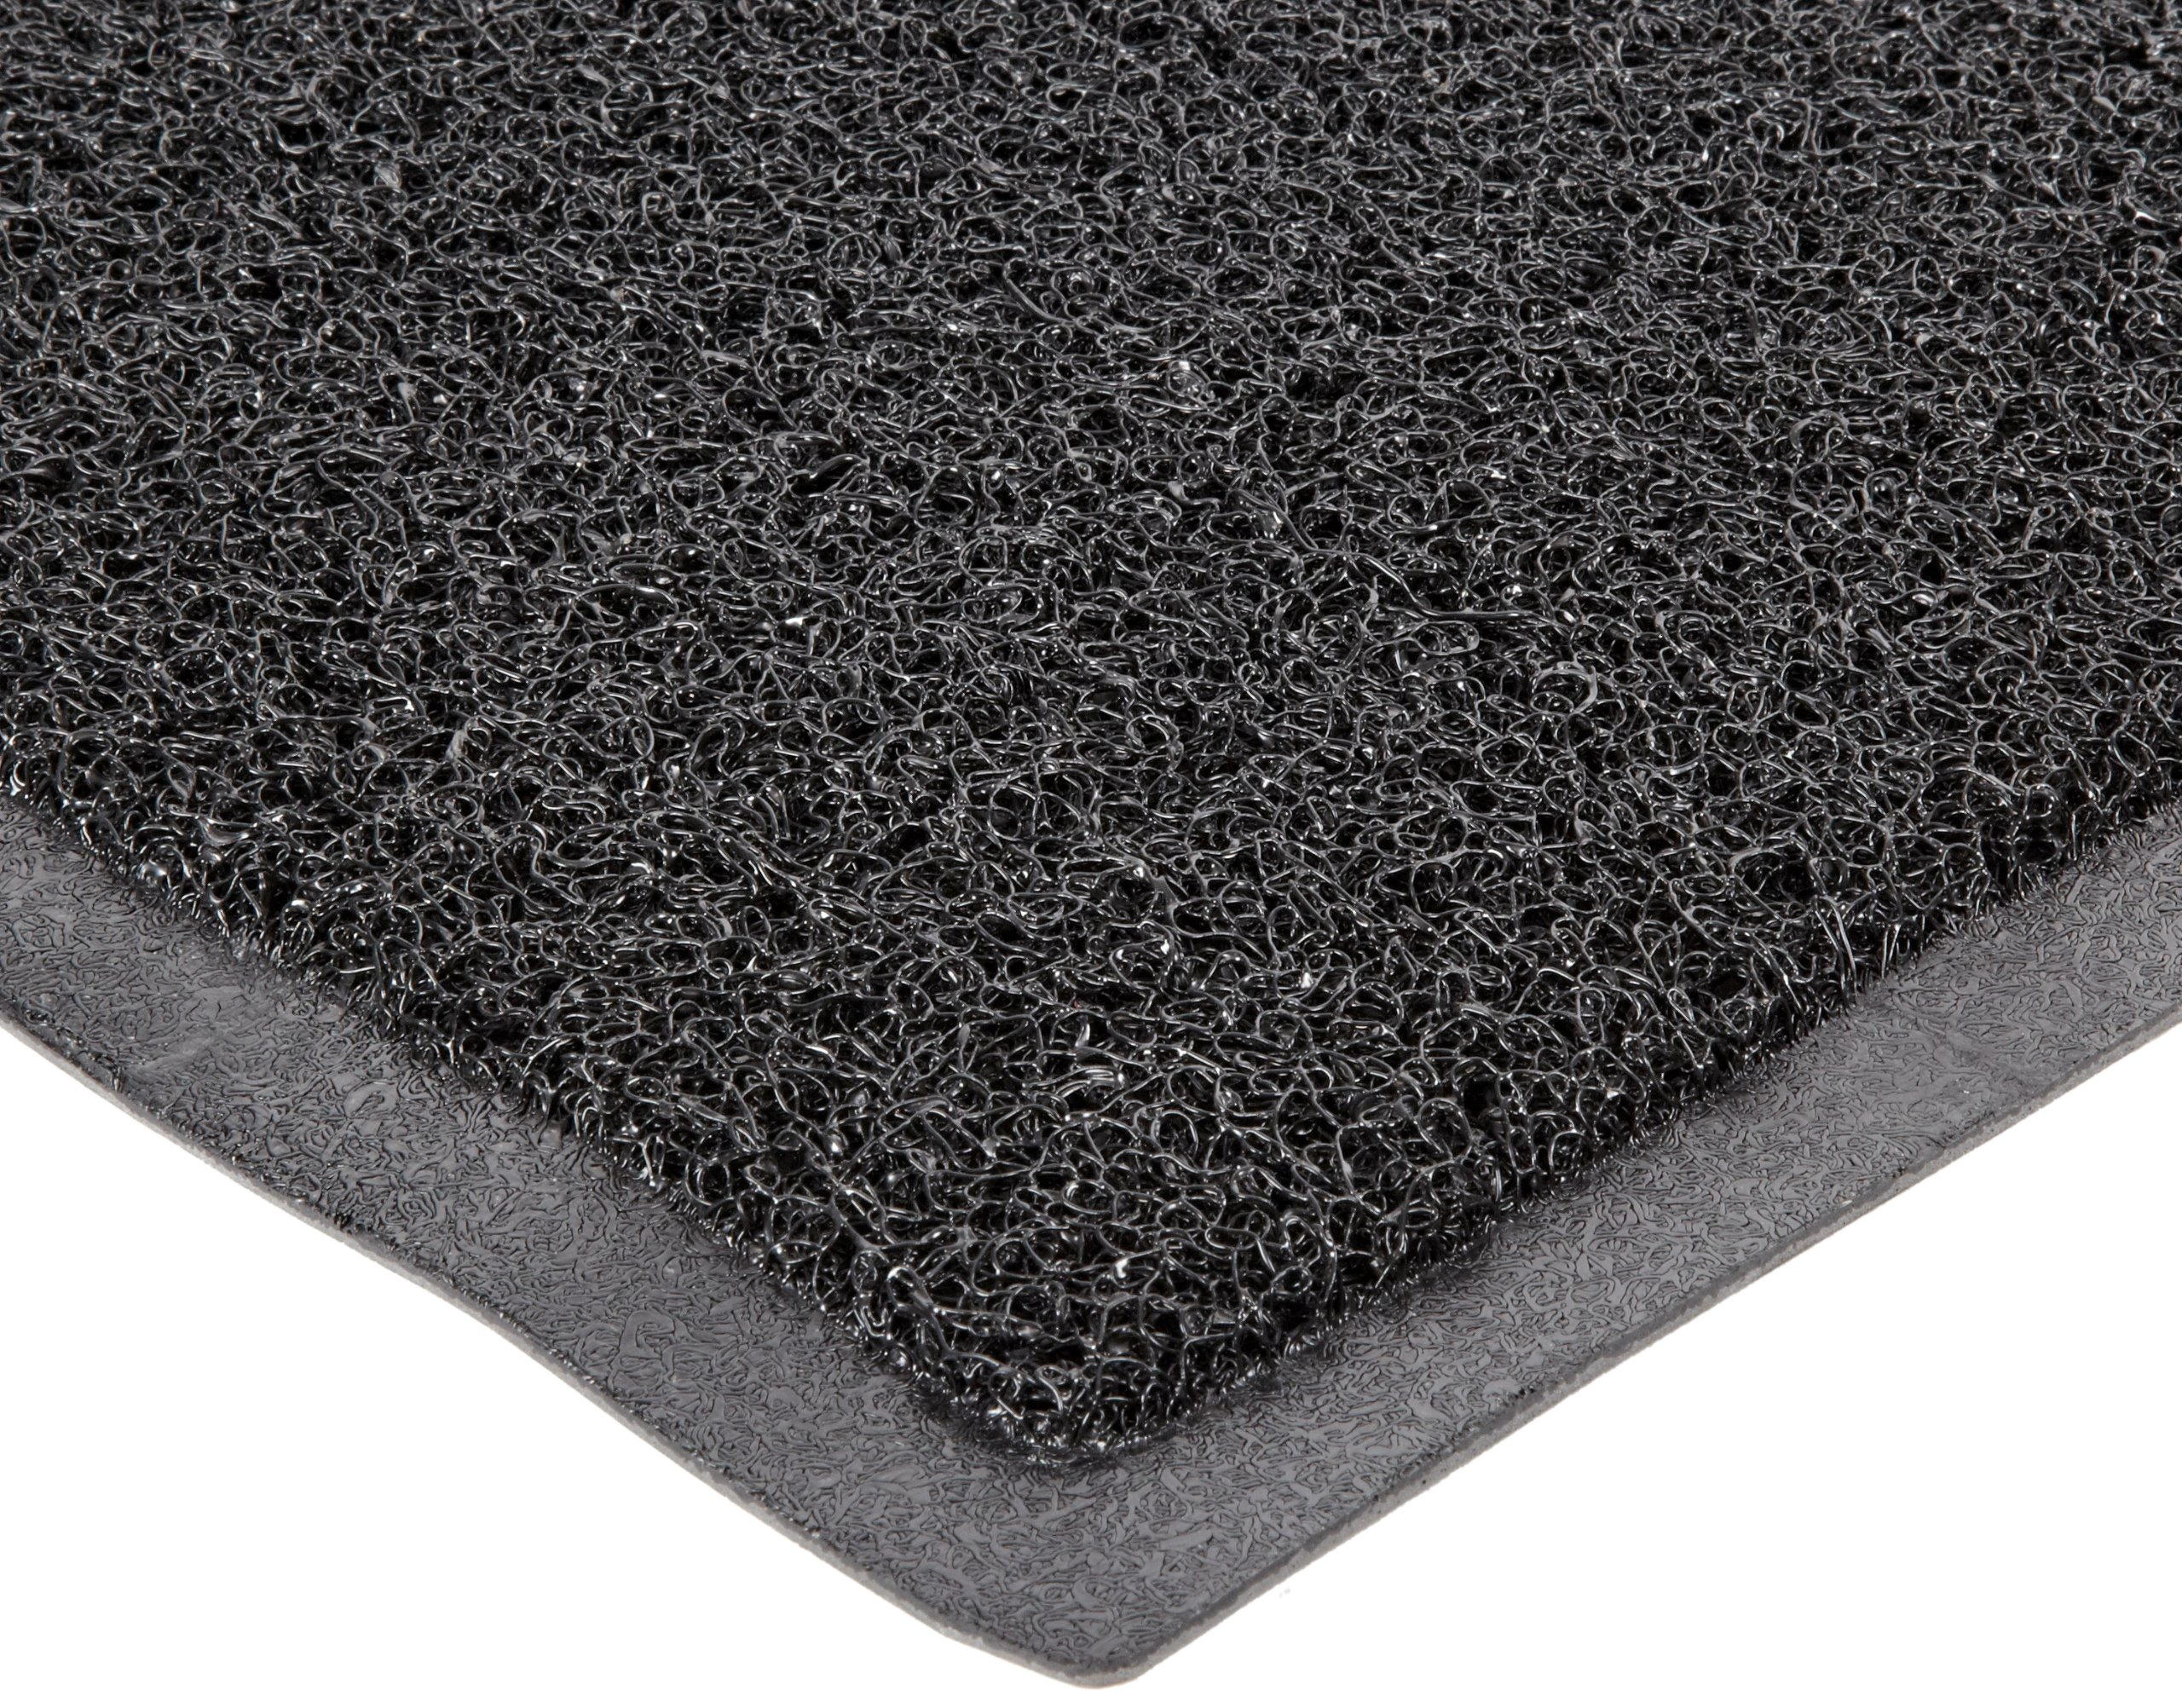 Durable DuraLoop Indoor/Outdoor Entrance Mat, 2' x 3', Black